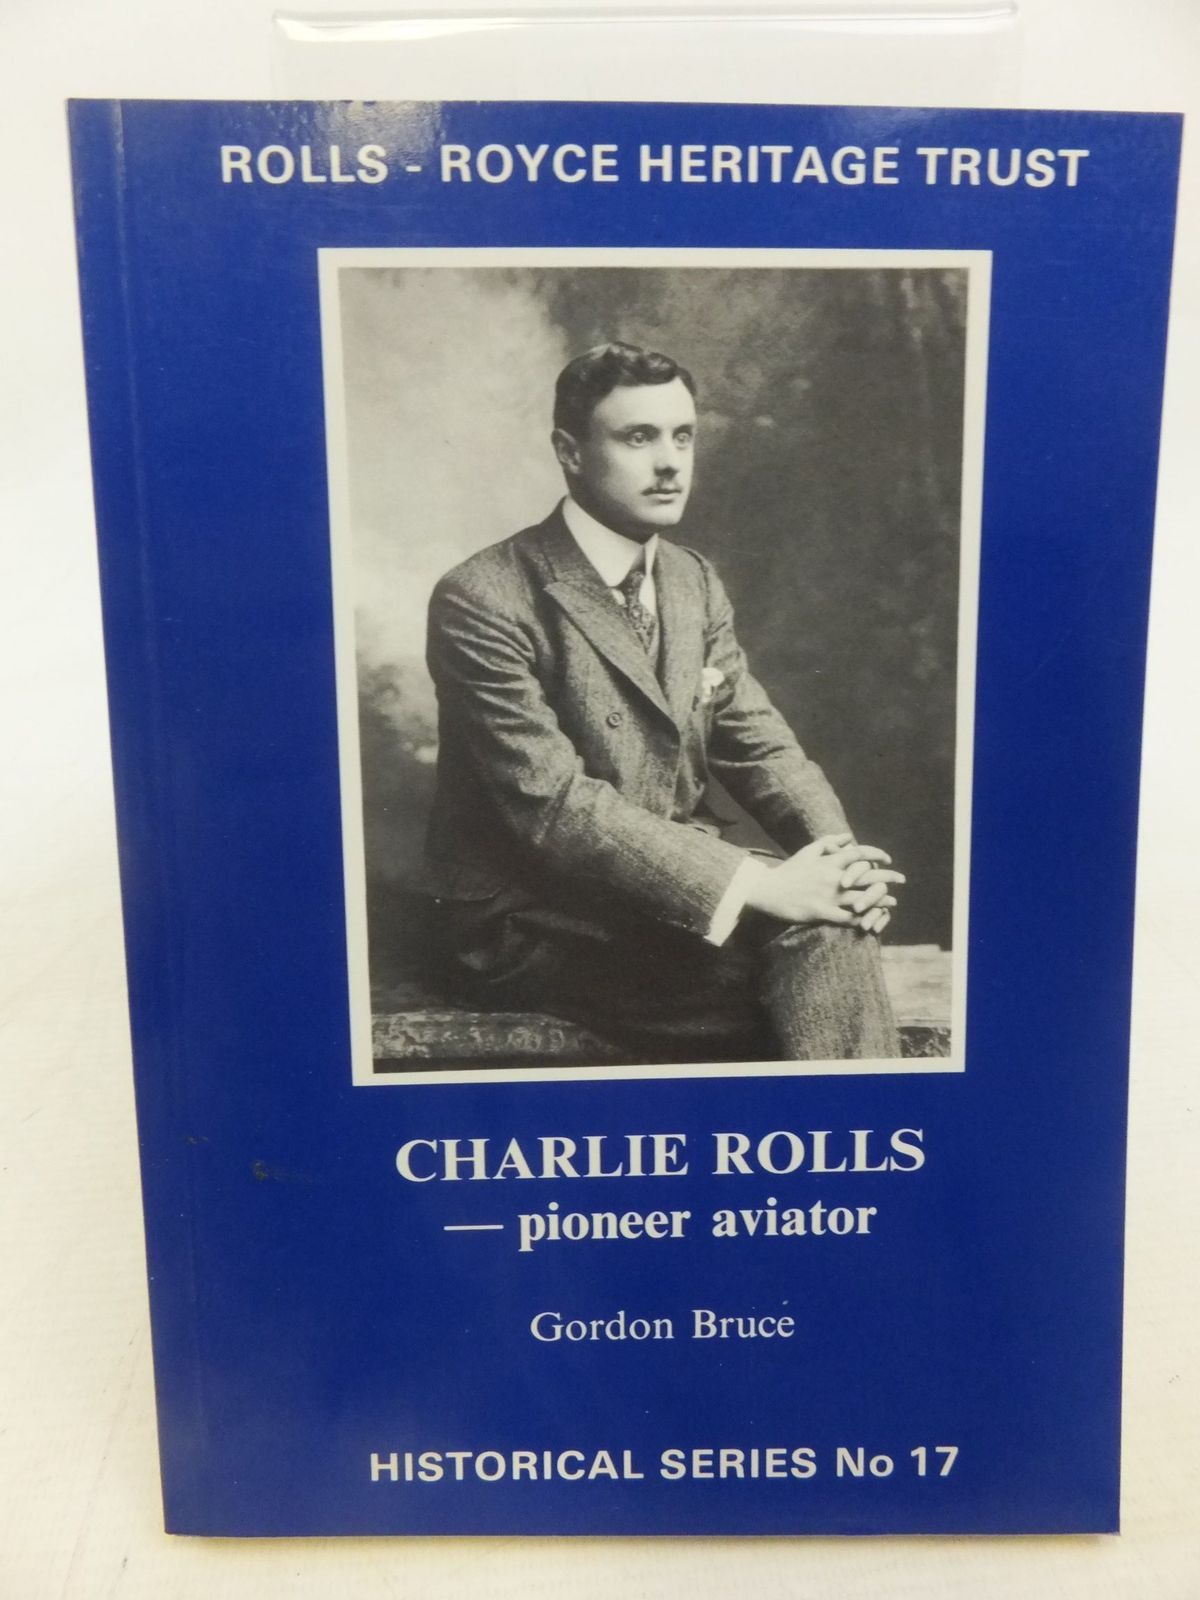 Photo of CHARLIE ROLLS PIONEER AVIATOR written by Bruce, Gordon published by Rolls-Royce Heritage Trust (STOCK CODE: 1712179)  for sale by Stella & Rose's Books